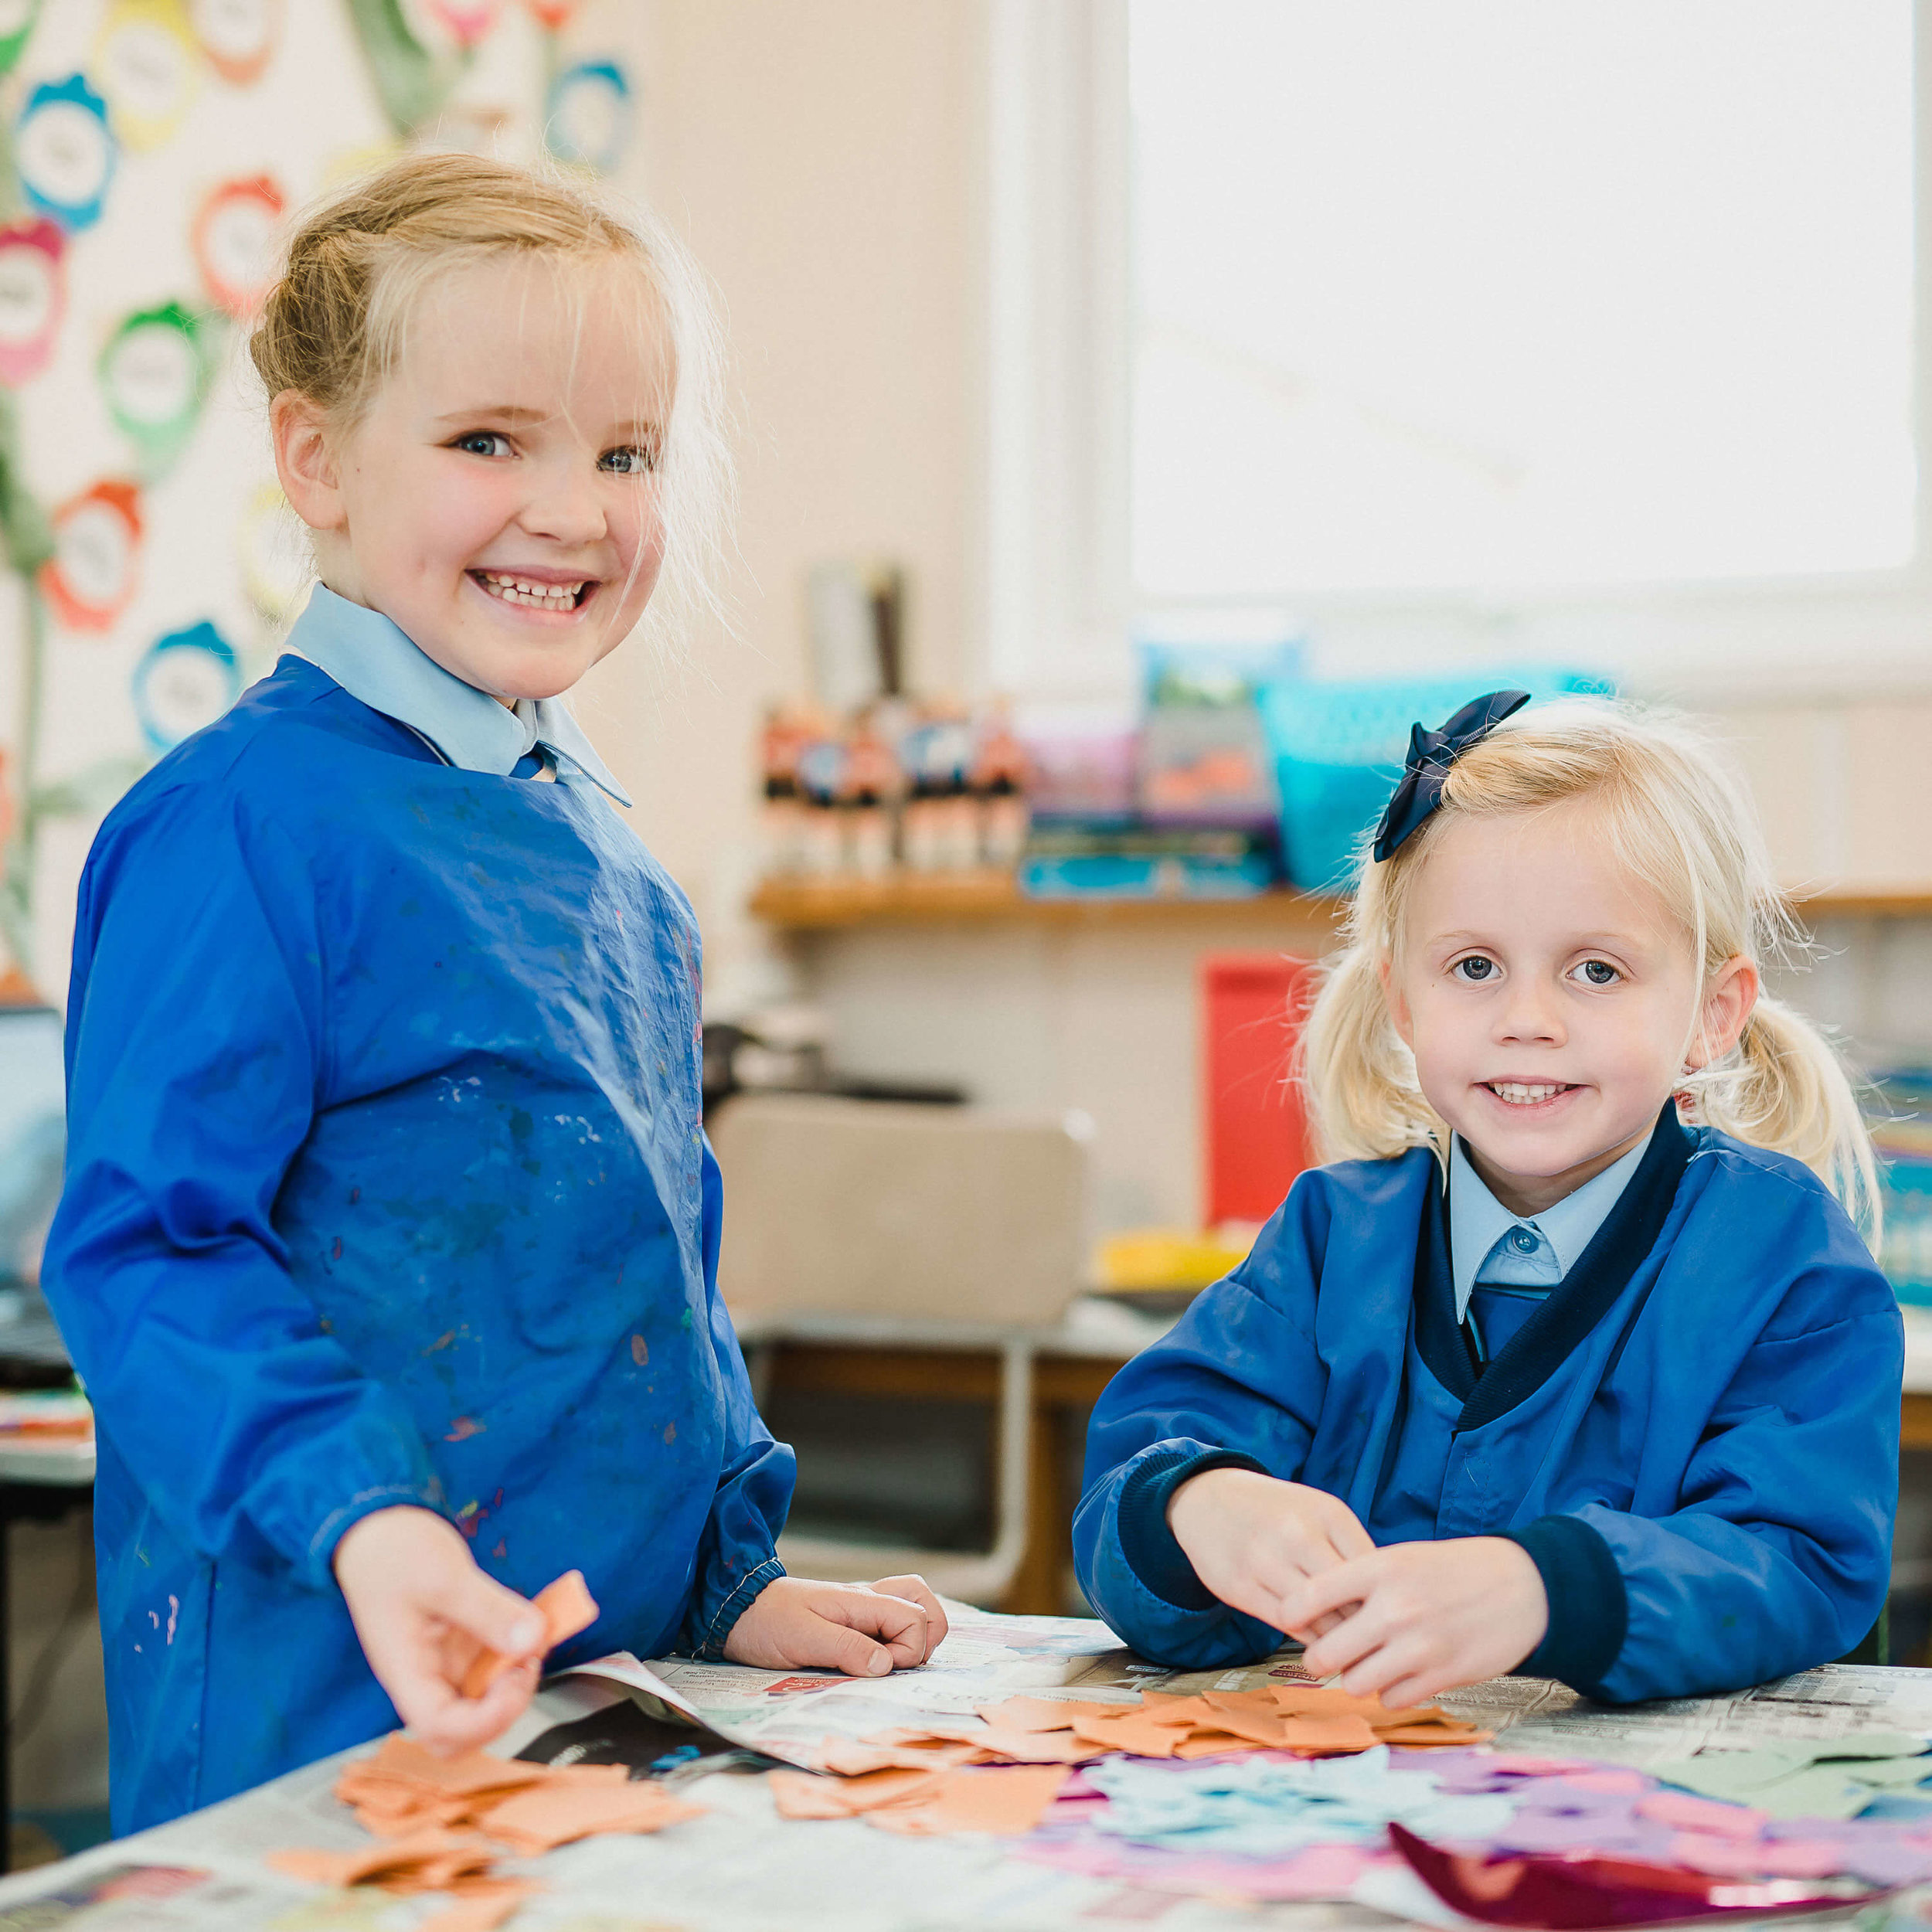 Hessle-Mount-Primary---Prospectus-Shoot---September-2017-307.jpg